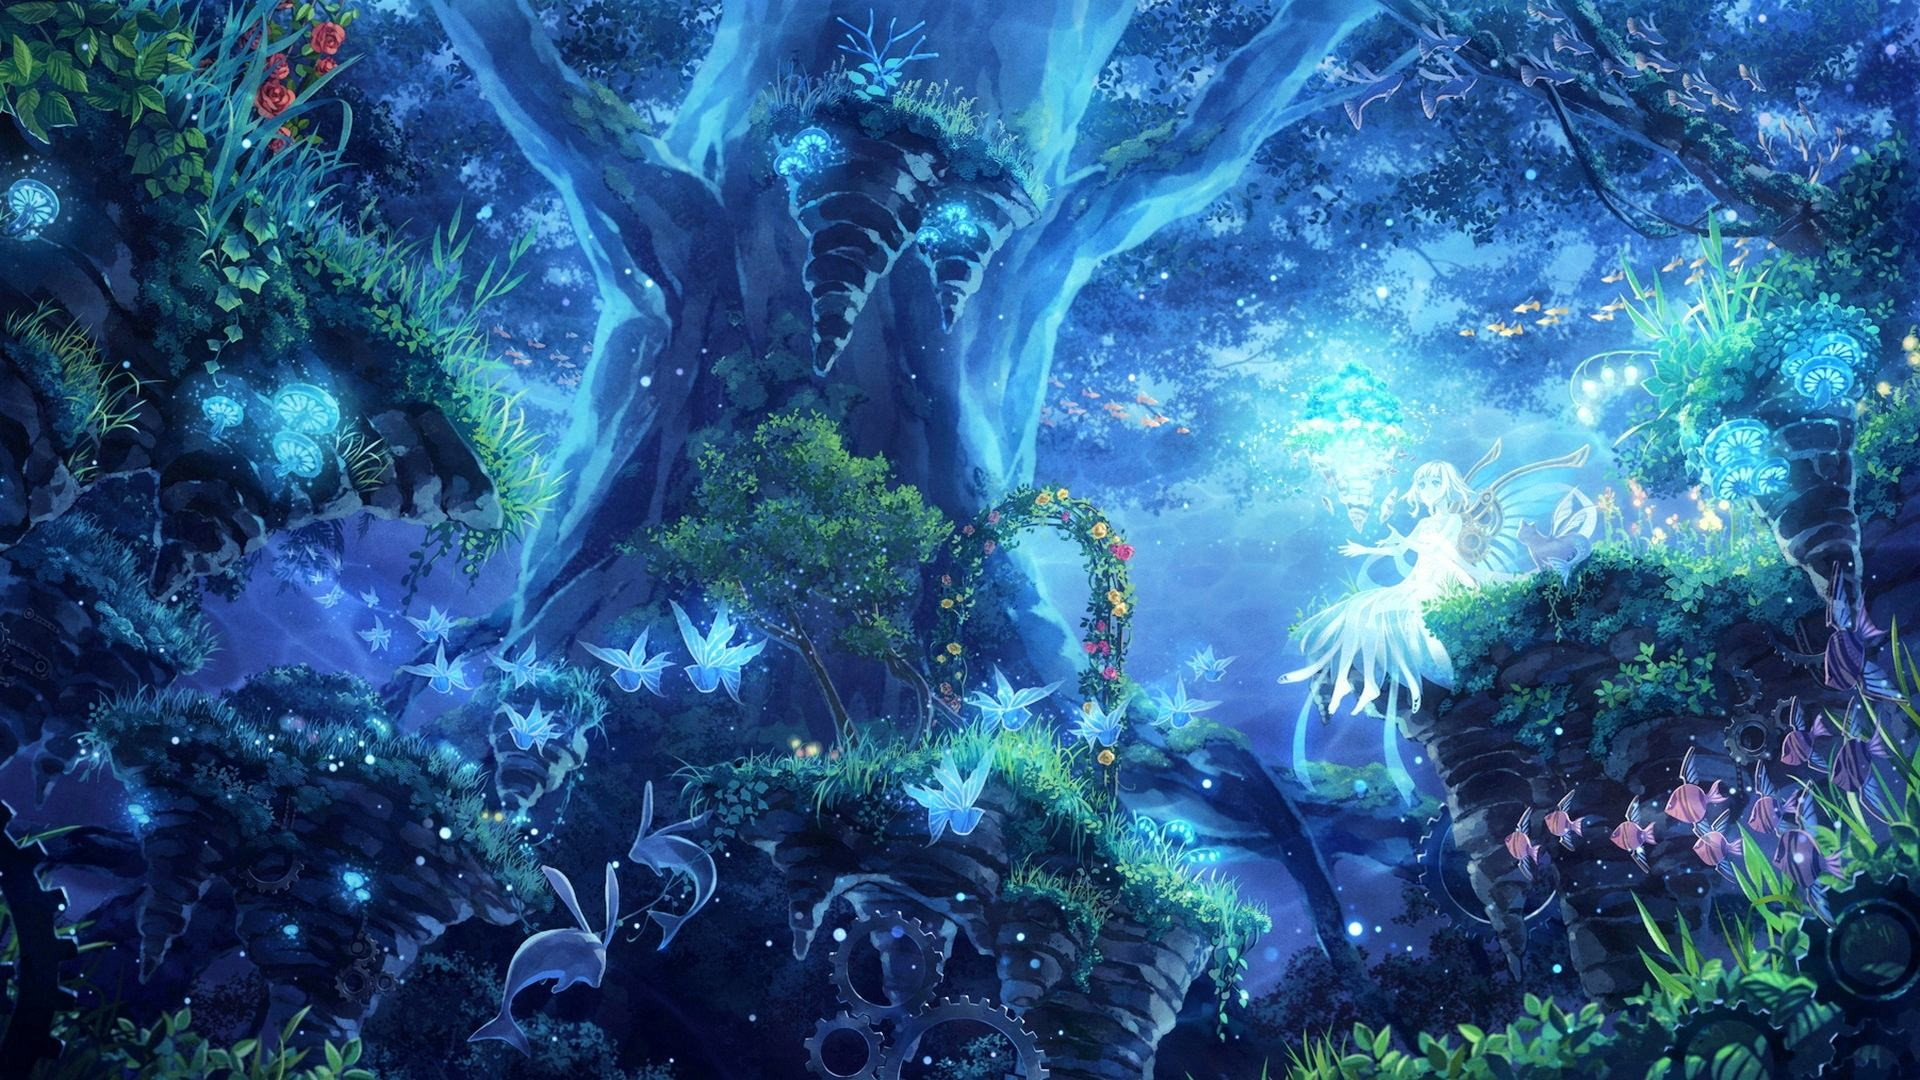 trippy forest wallpaper 56 images